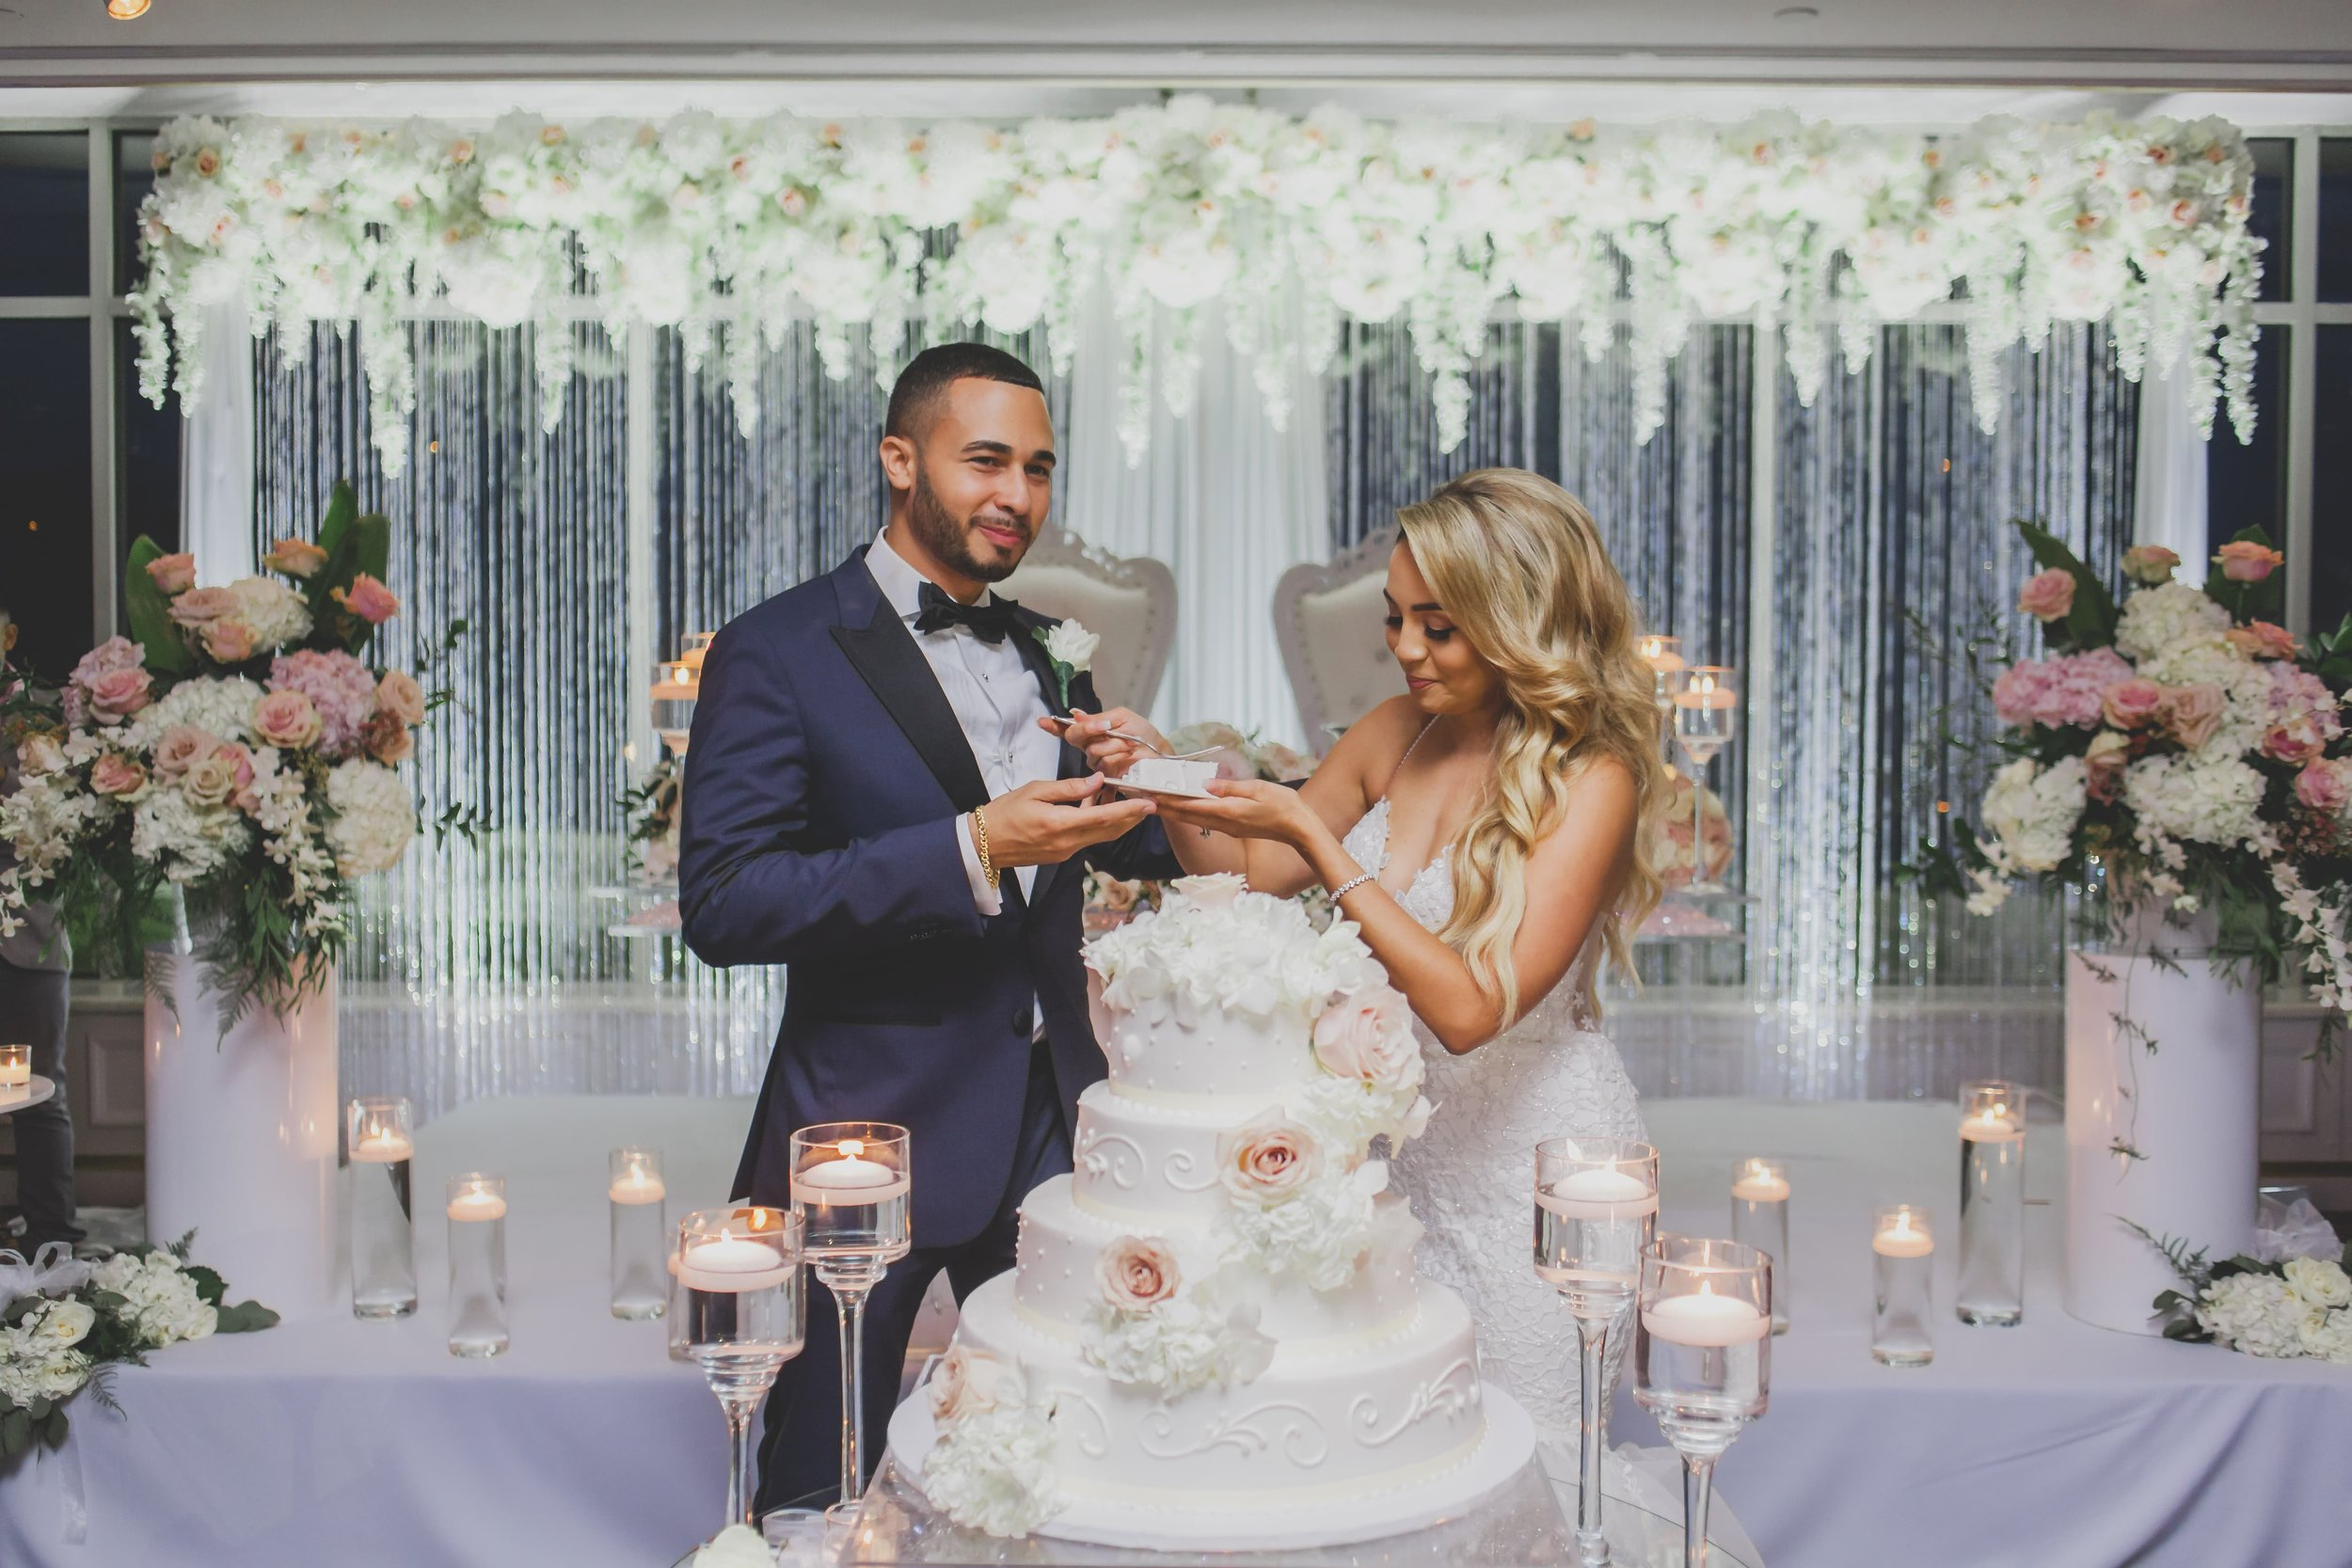 A bride and groom exchanging bites of wedding cake flanked by floating candles and flowers.